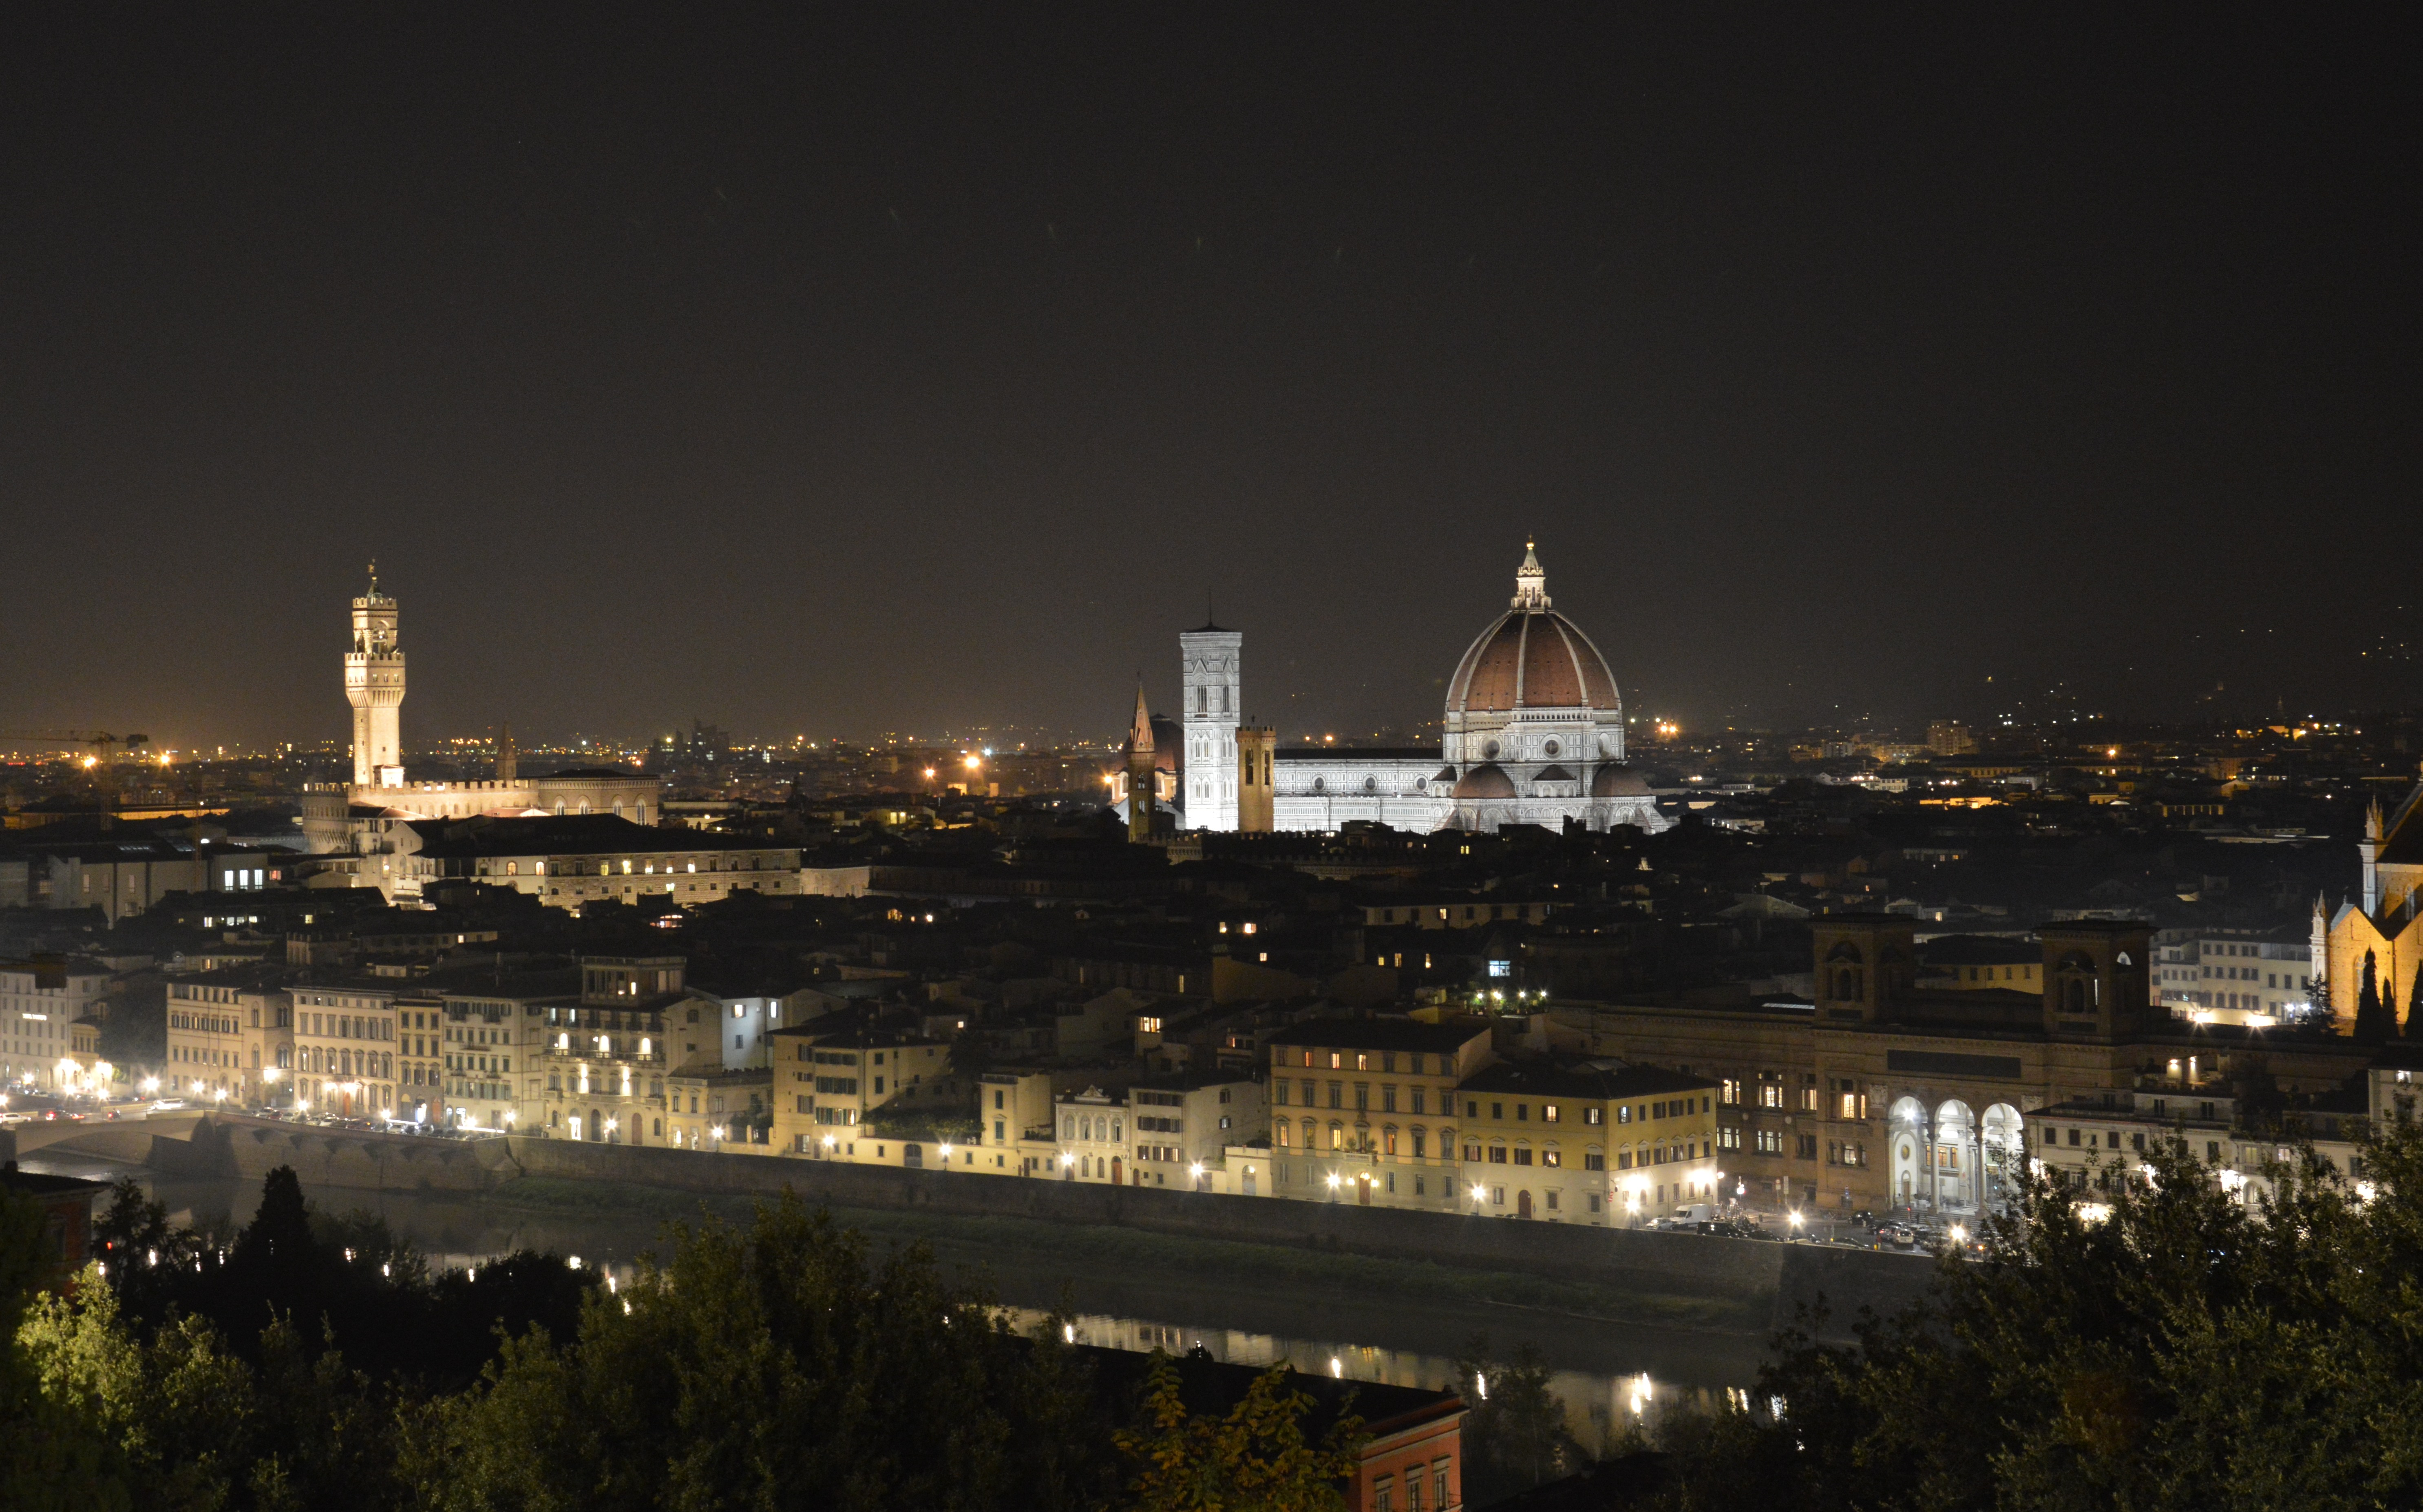 Italian Florence: File:View From Piazzale Michelangelo (Florence) Night.JPG